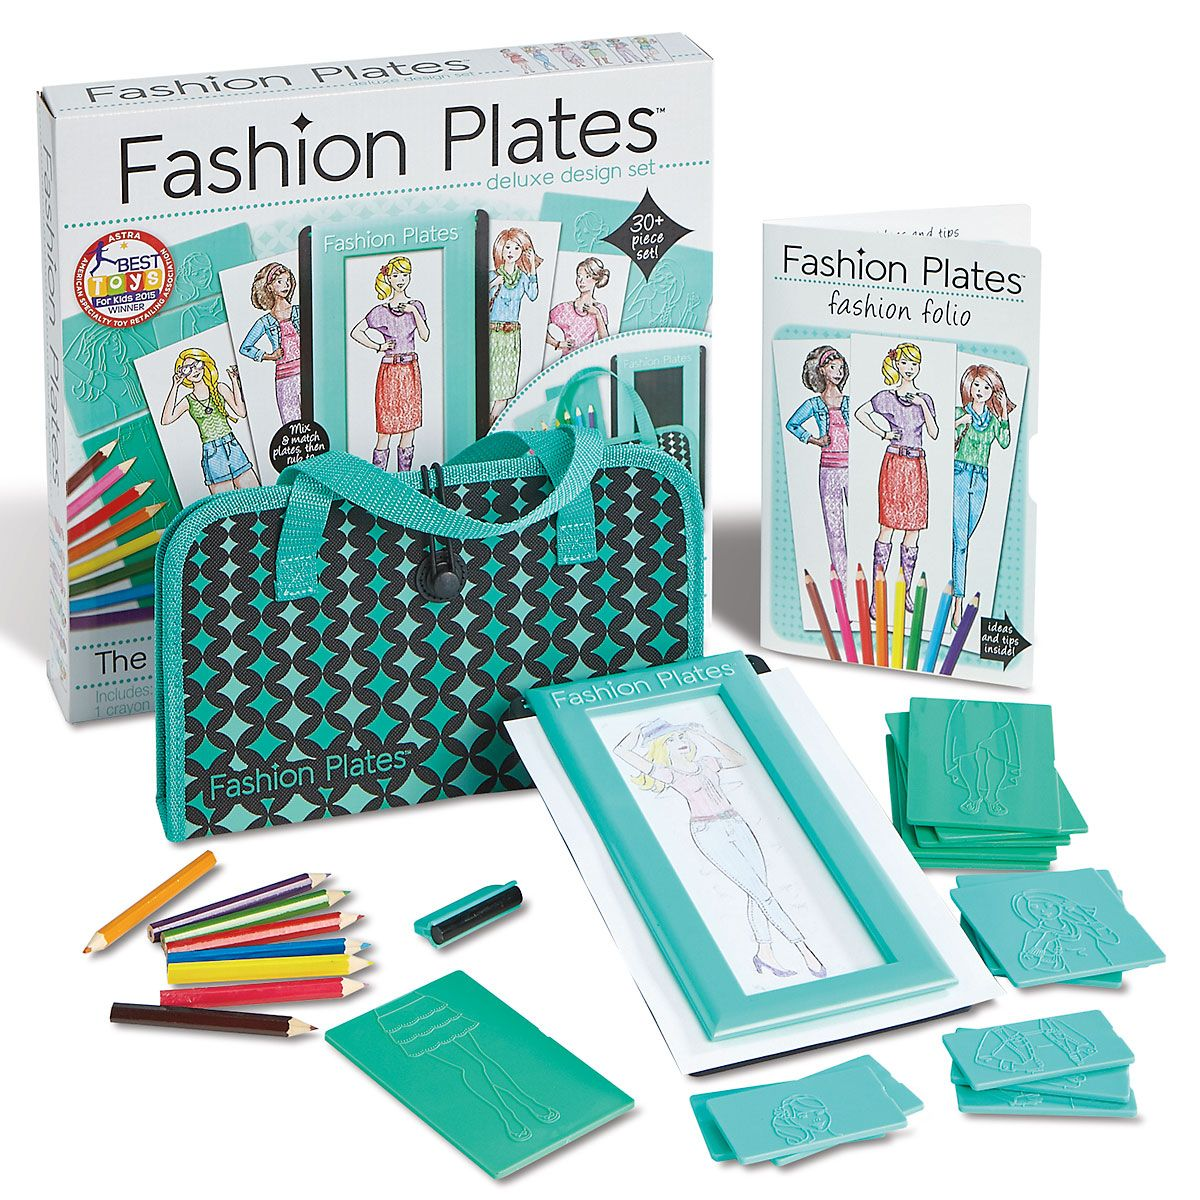 Fashion Plates Design Set and Carry Case